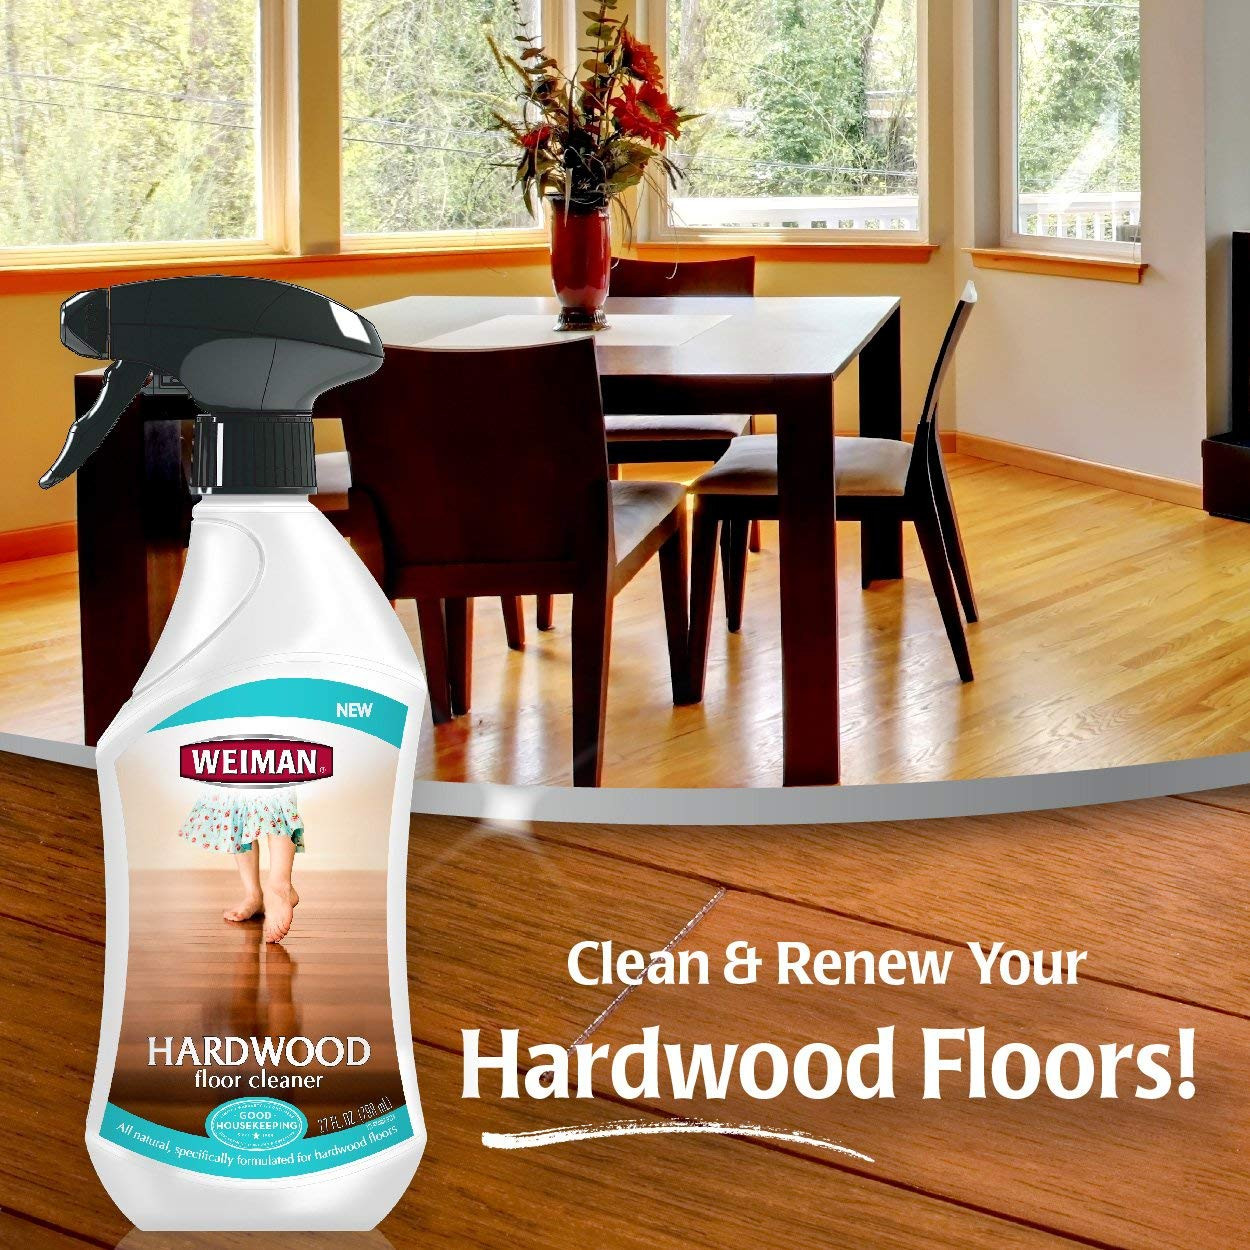 fake hardwood floor options of amazon com weiman hardwood floor cleaner surface safe no harsh in amazon com weiman hardwood floor cleaner surface safe no harsh scent safe for use around kids and pets residue free 27 oz trigger home kitchen